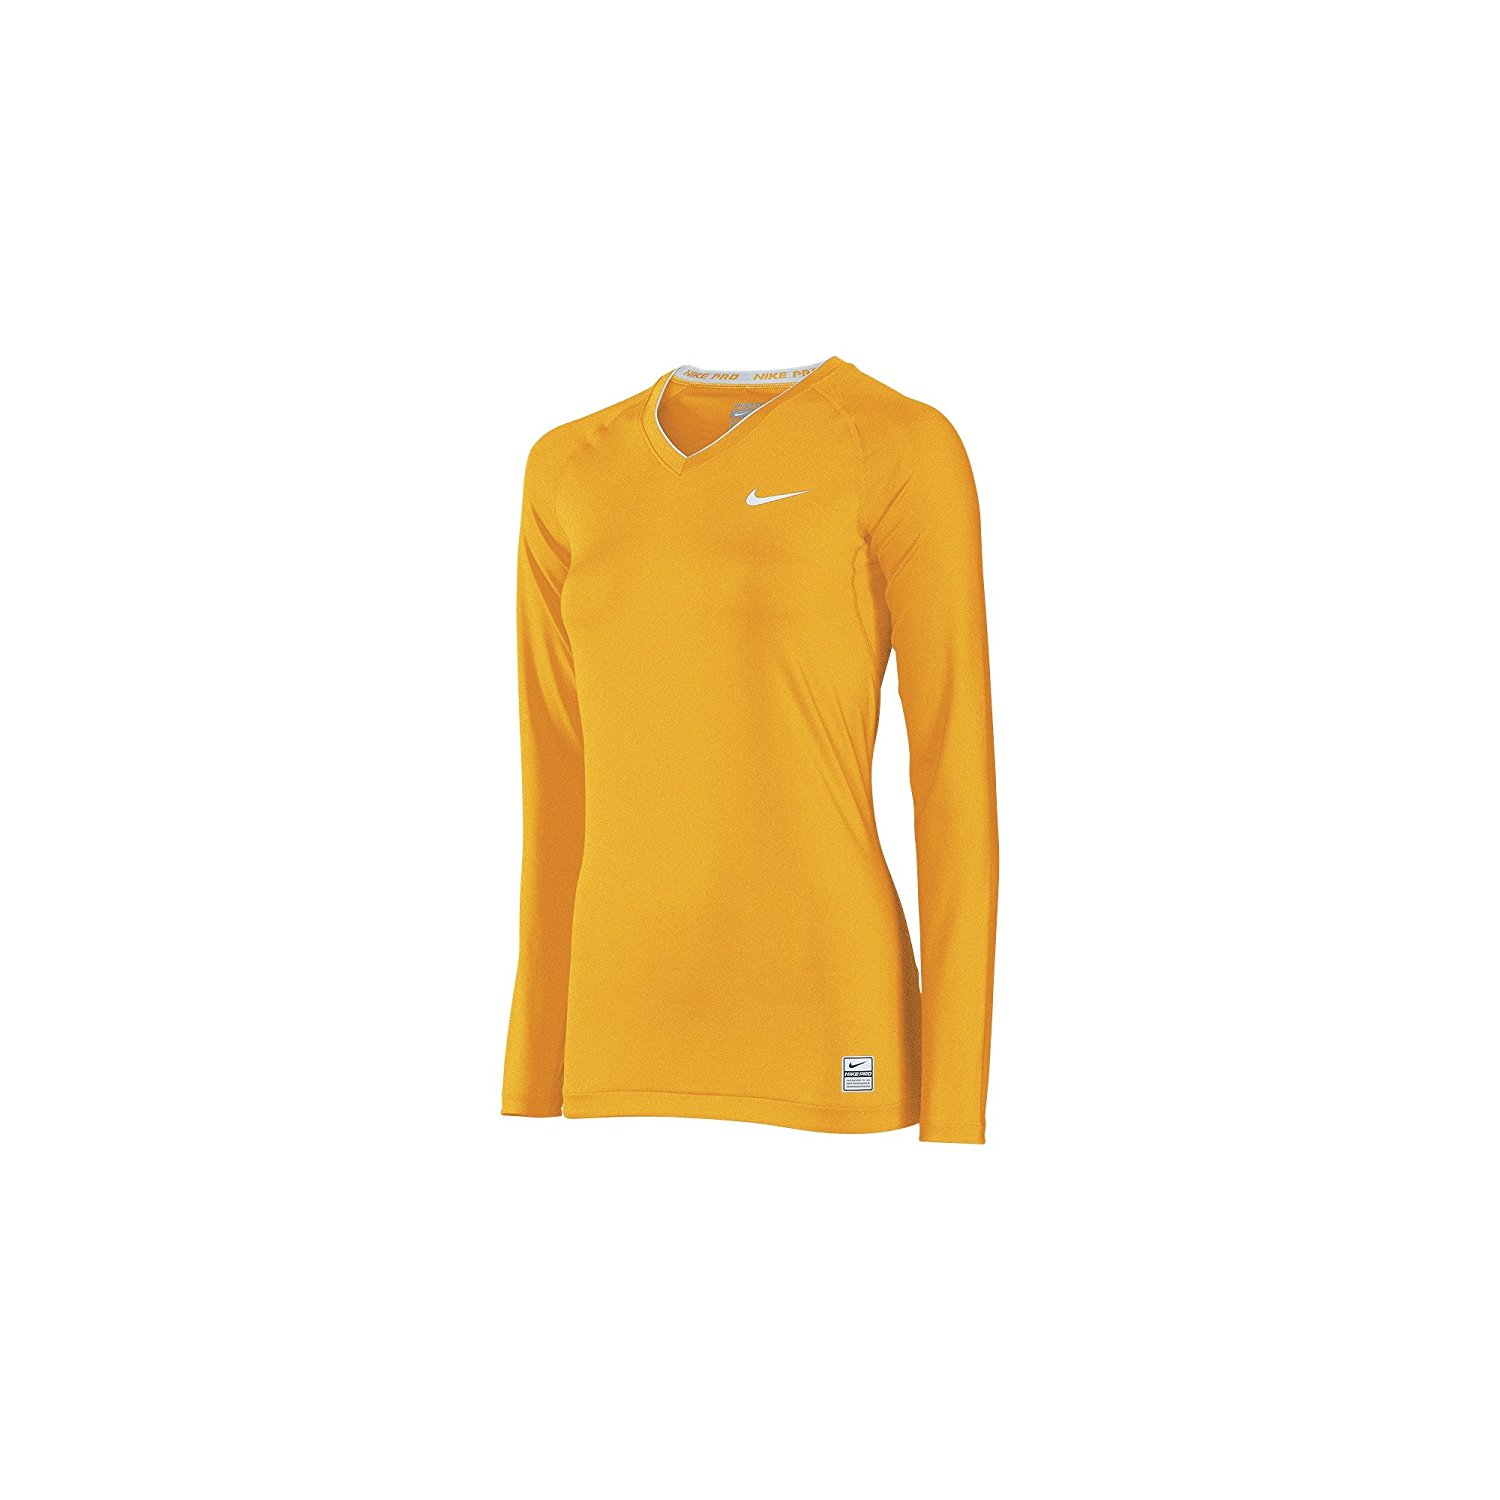 807ec603 Nike Women's Pro Core Tight Compression Long Sleeve V-Neck Top 410 727 Size  M